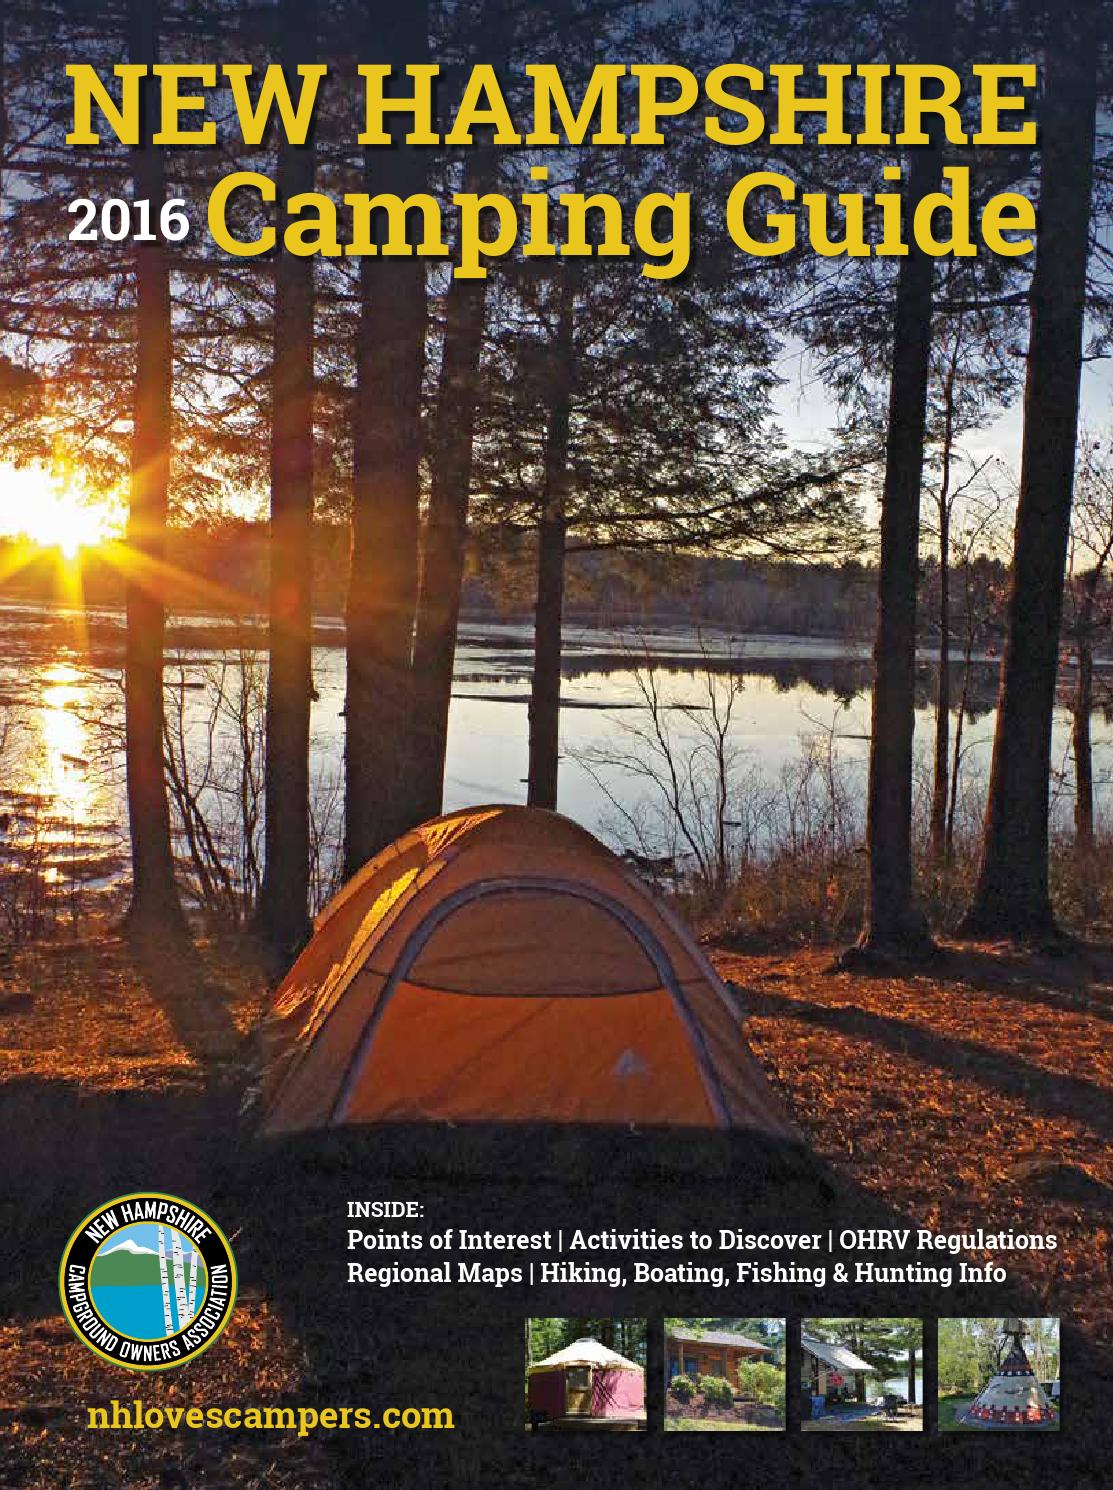 Cottages amp campground rentals riverview cottages campground jackman - Nh Camping Guide 2016 By New Hampshire Campground Owners Association Issuu